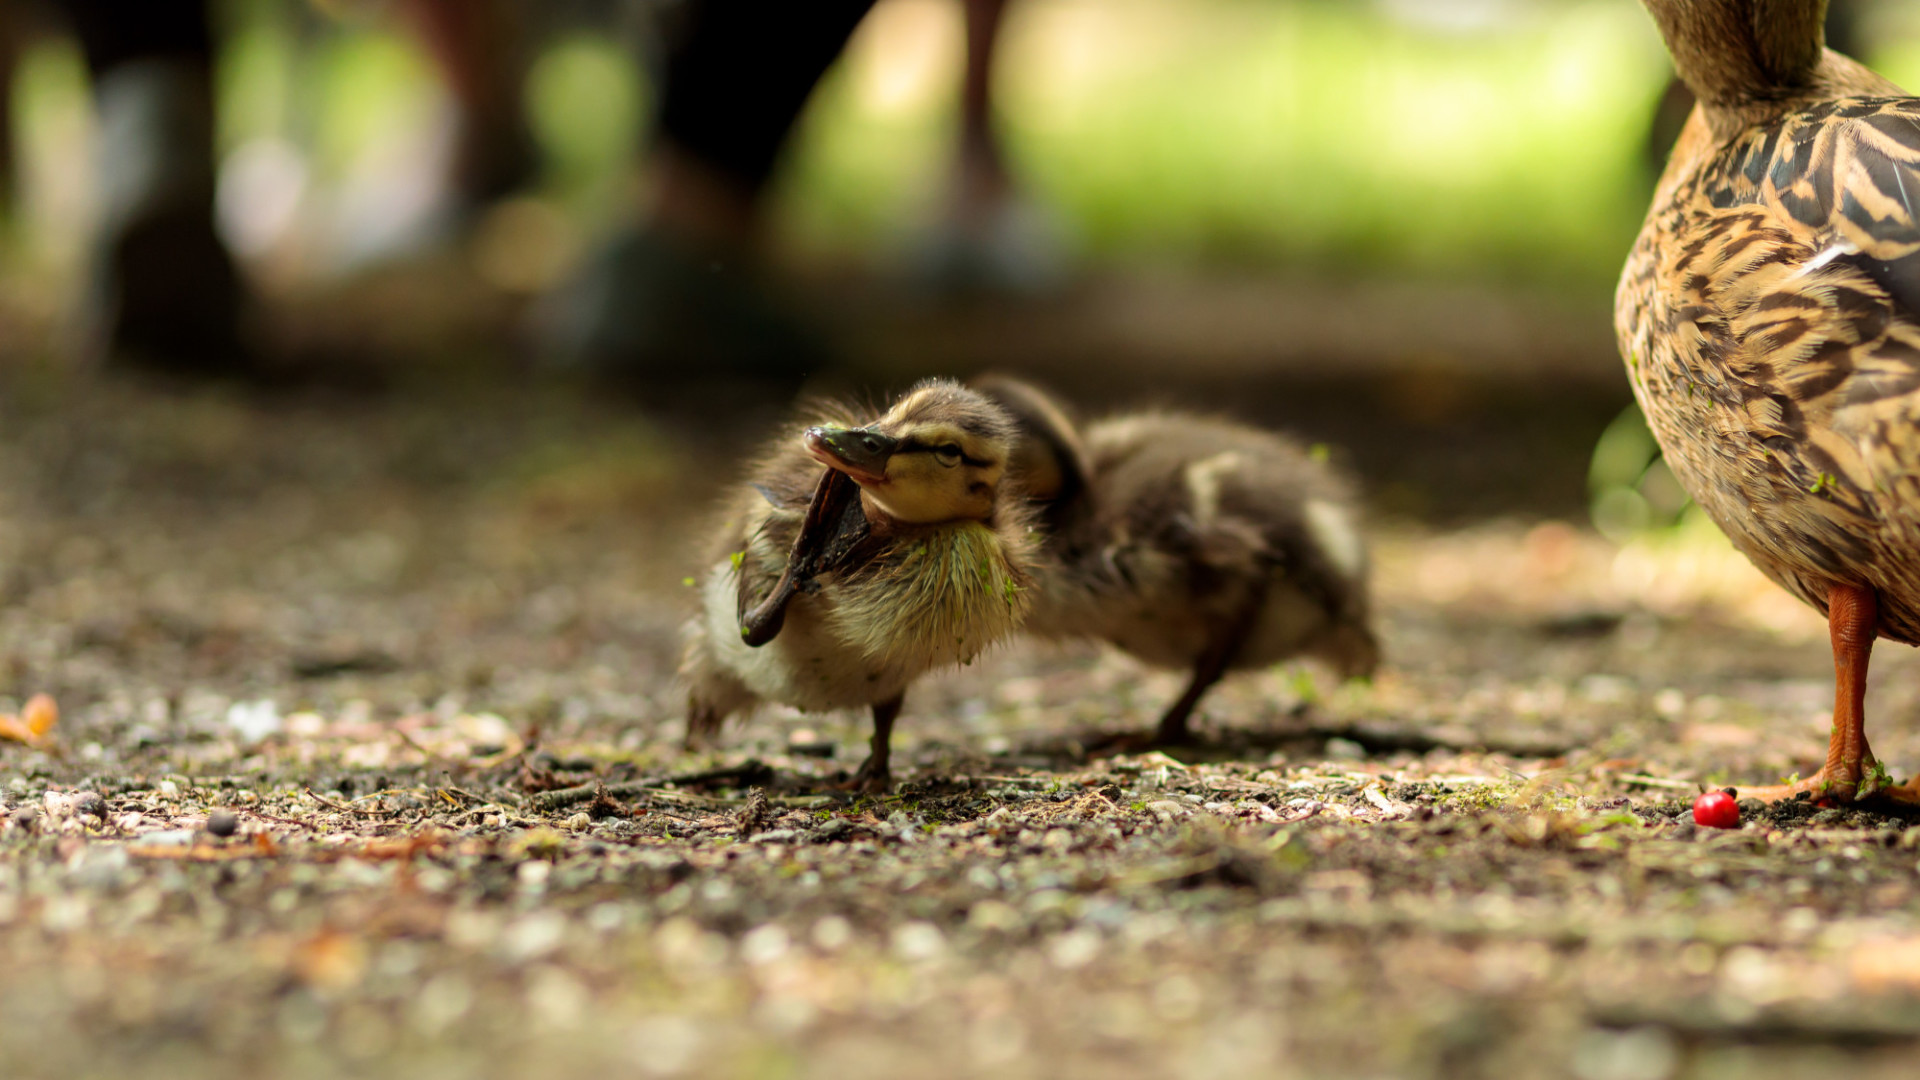 Duckling scratching its head